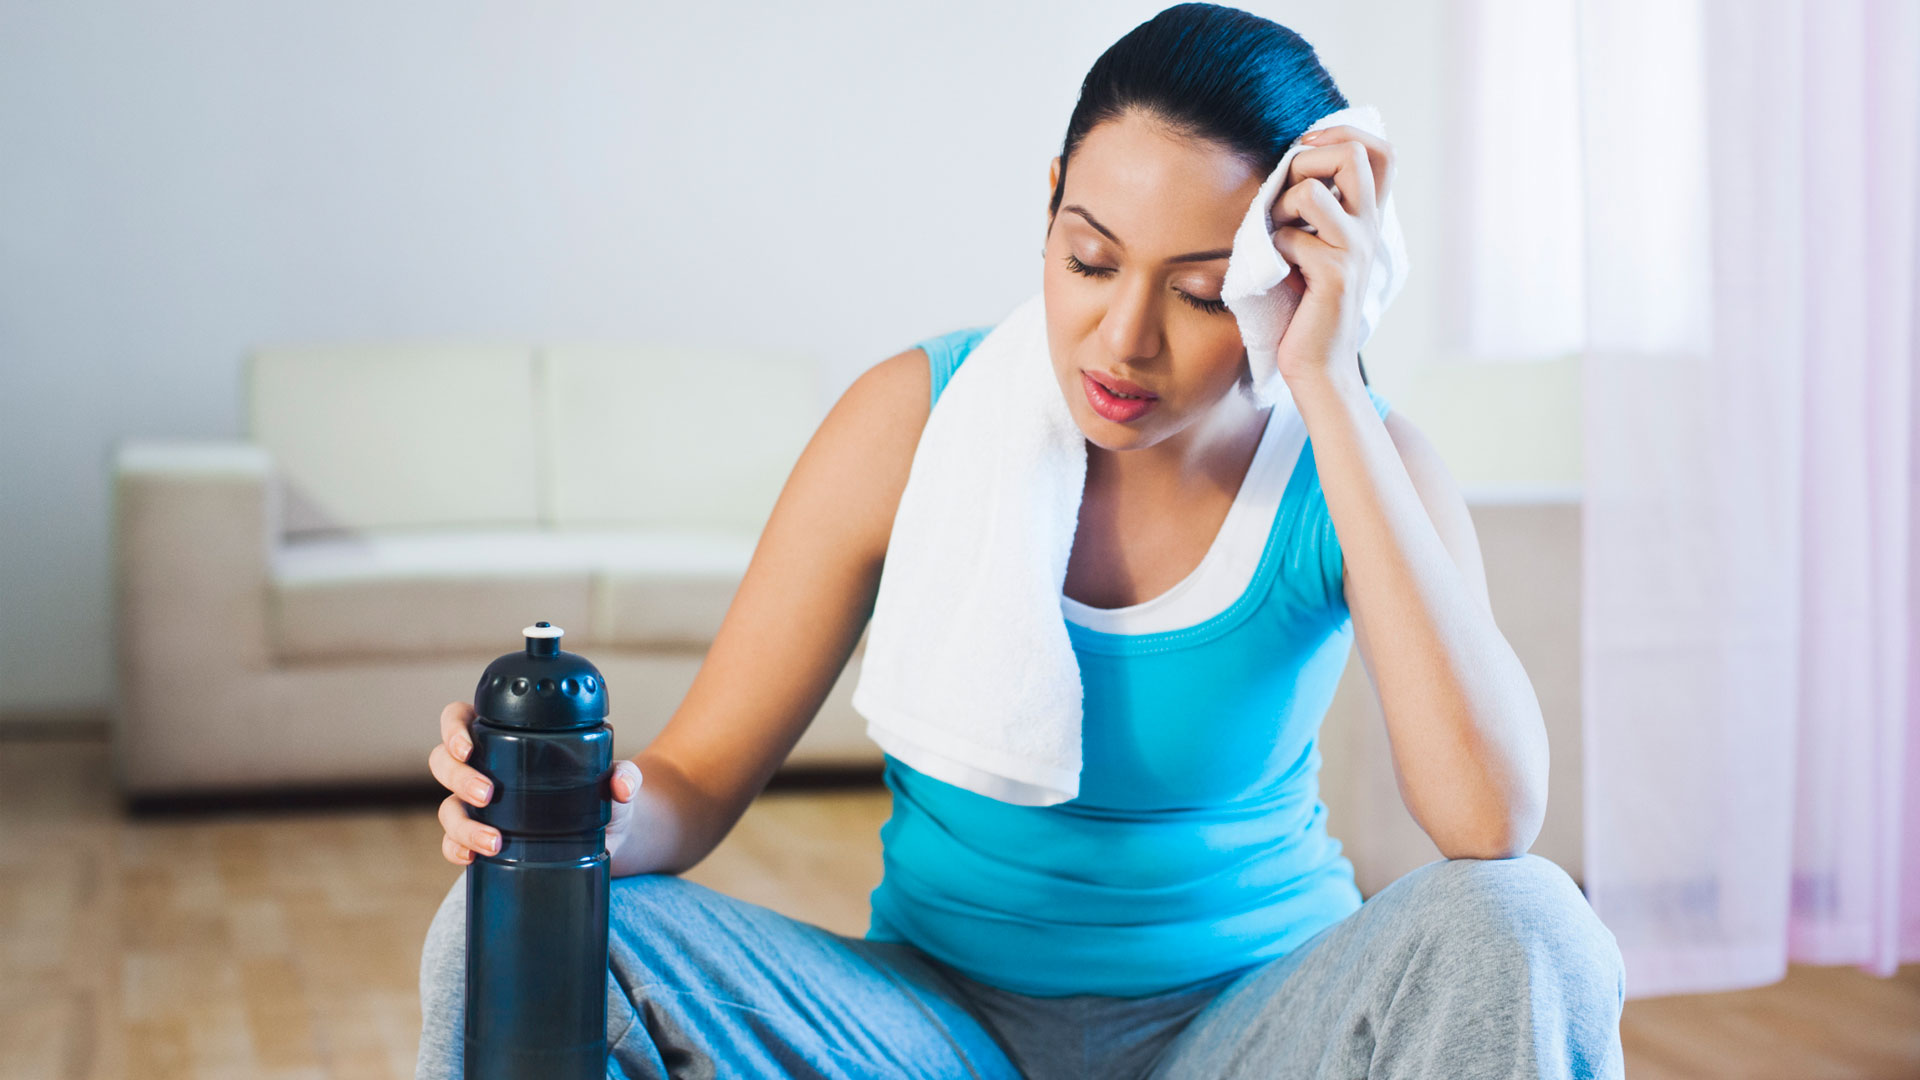 Woman tired from workout